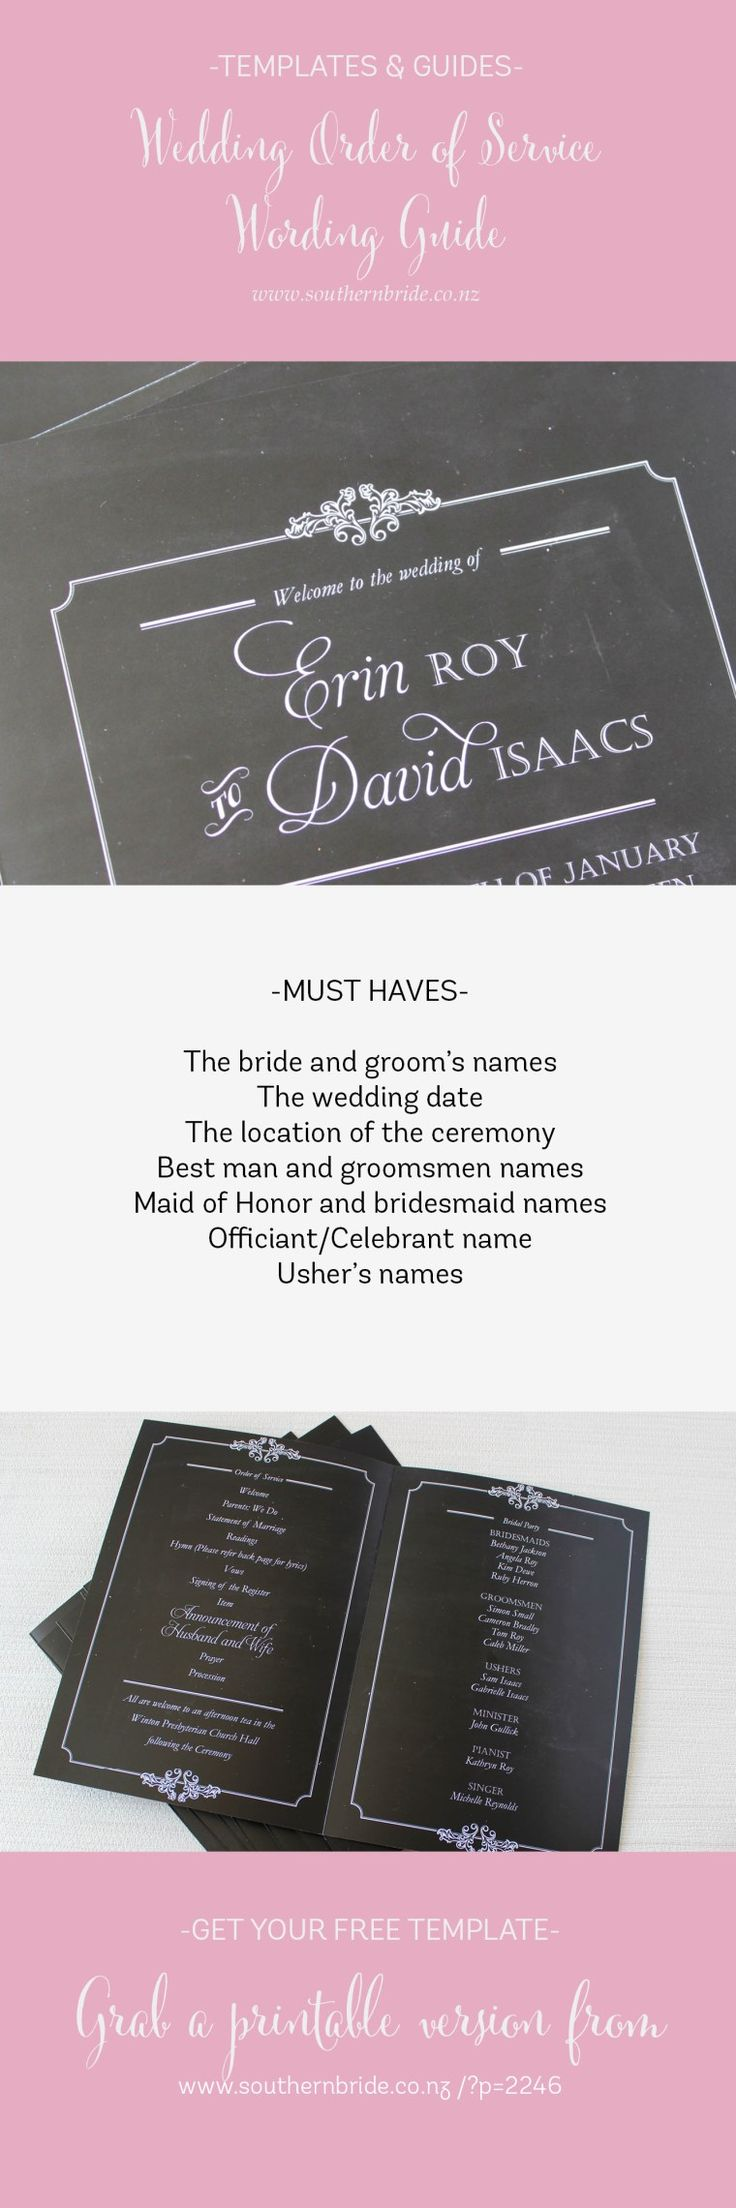 wedding ceremony wording samples%0A Wedding Order of Service Wording Template  list of everything you need to  include  plus